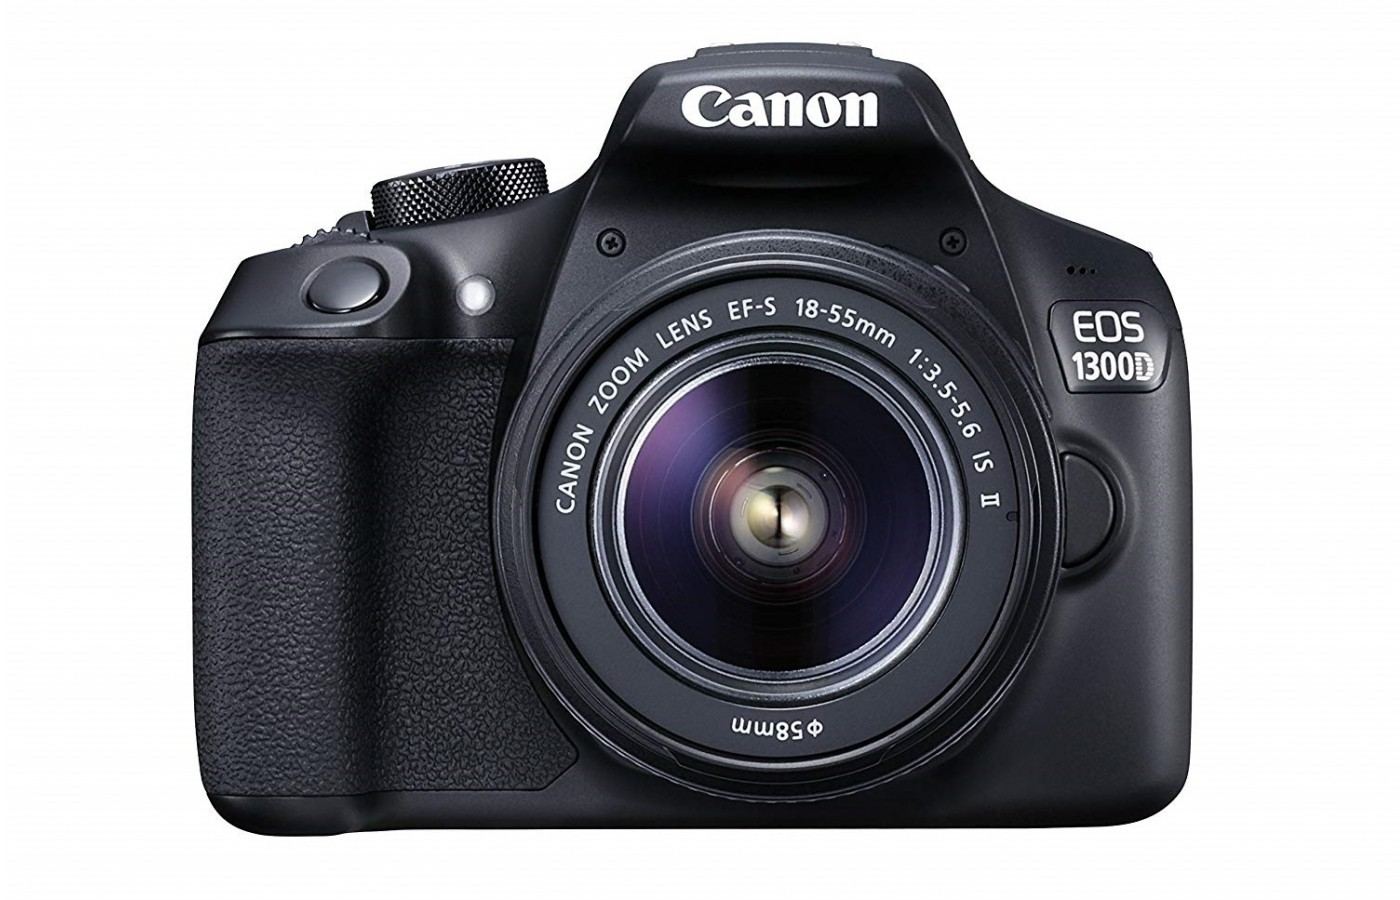 The Canon EOS 1300D offers a megapixel APS-C size sensor for clearer photos.